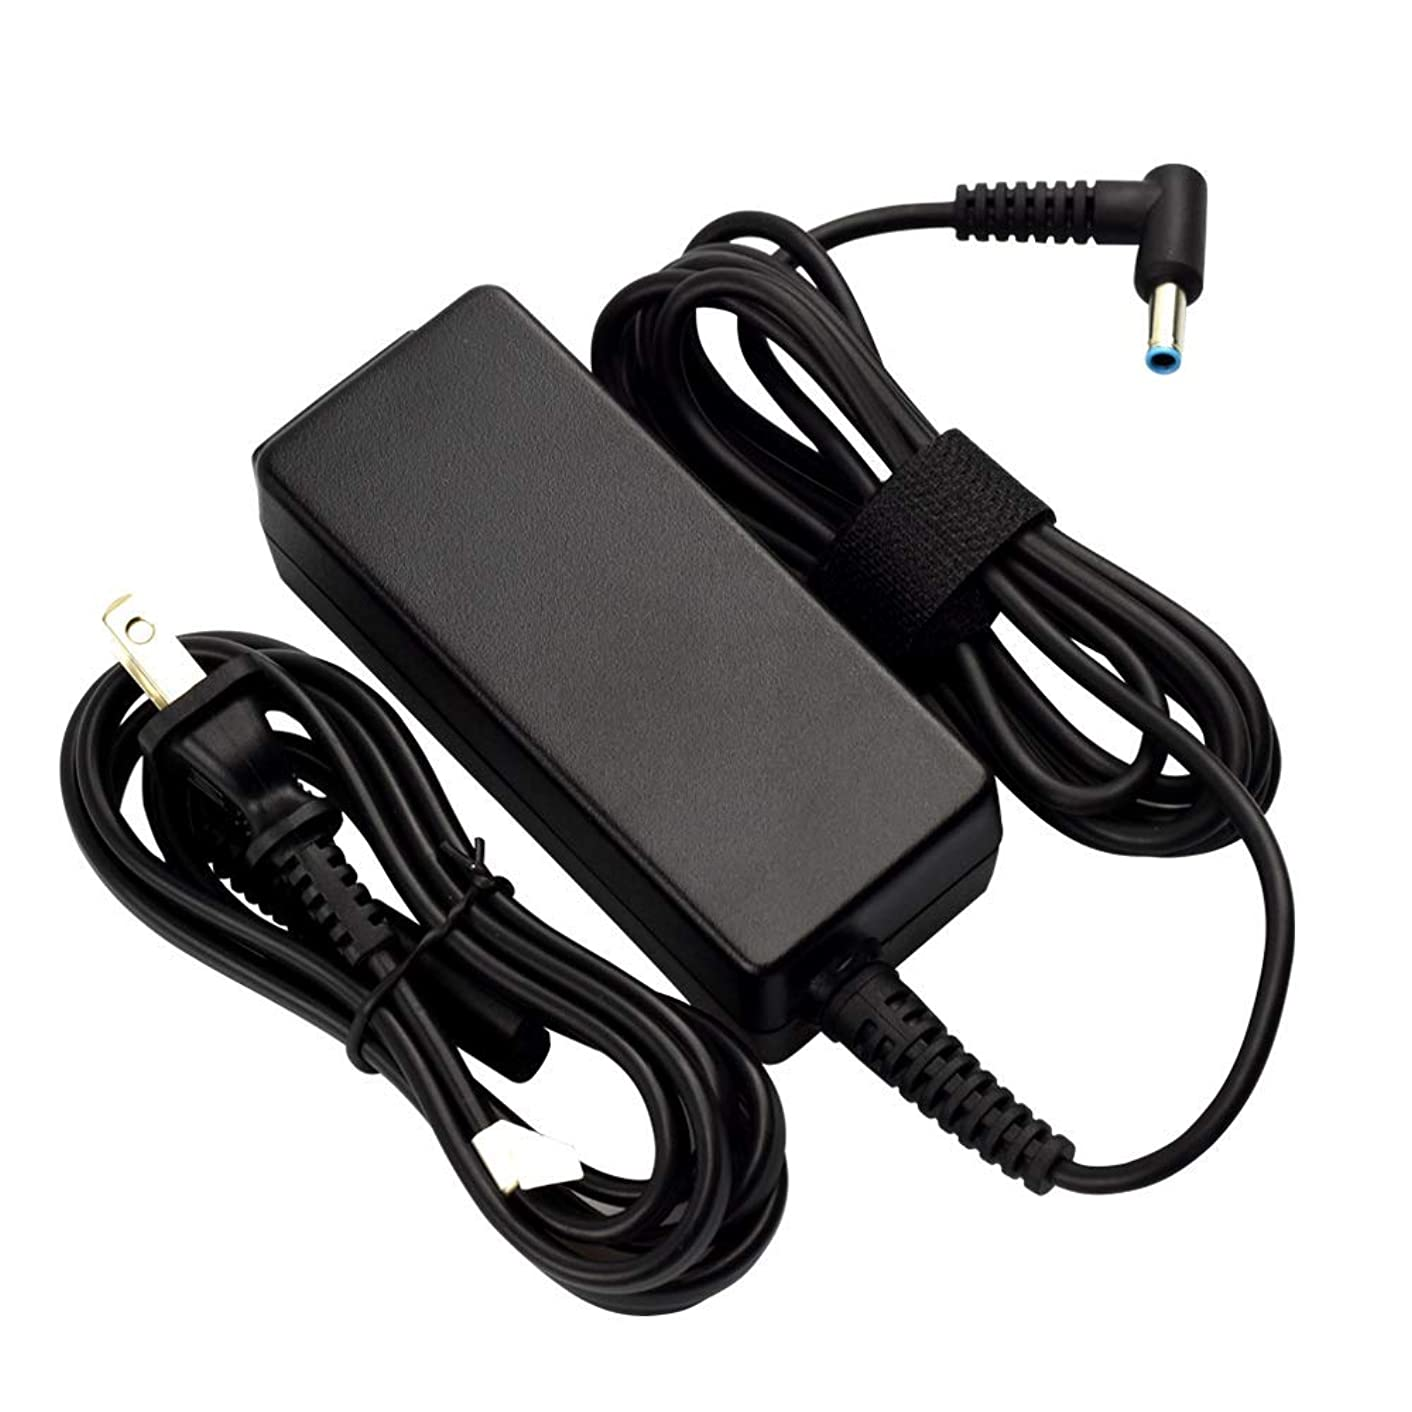 AC Charger Fit for HP Pavilion 17-g101dx Notebook PC with 5Ft Power Supply Adapter Cord